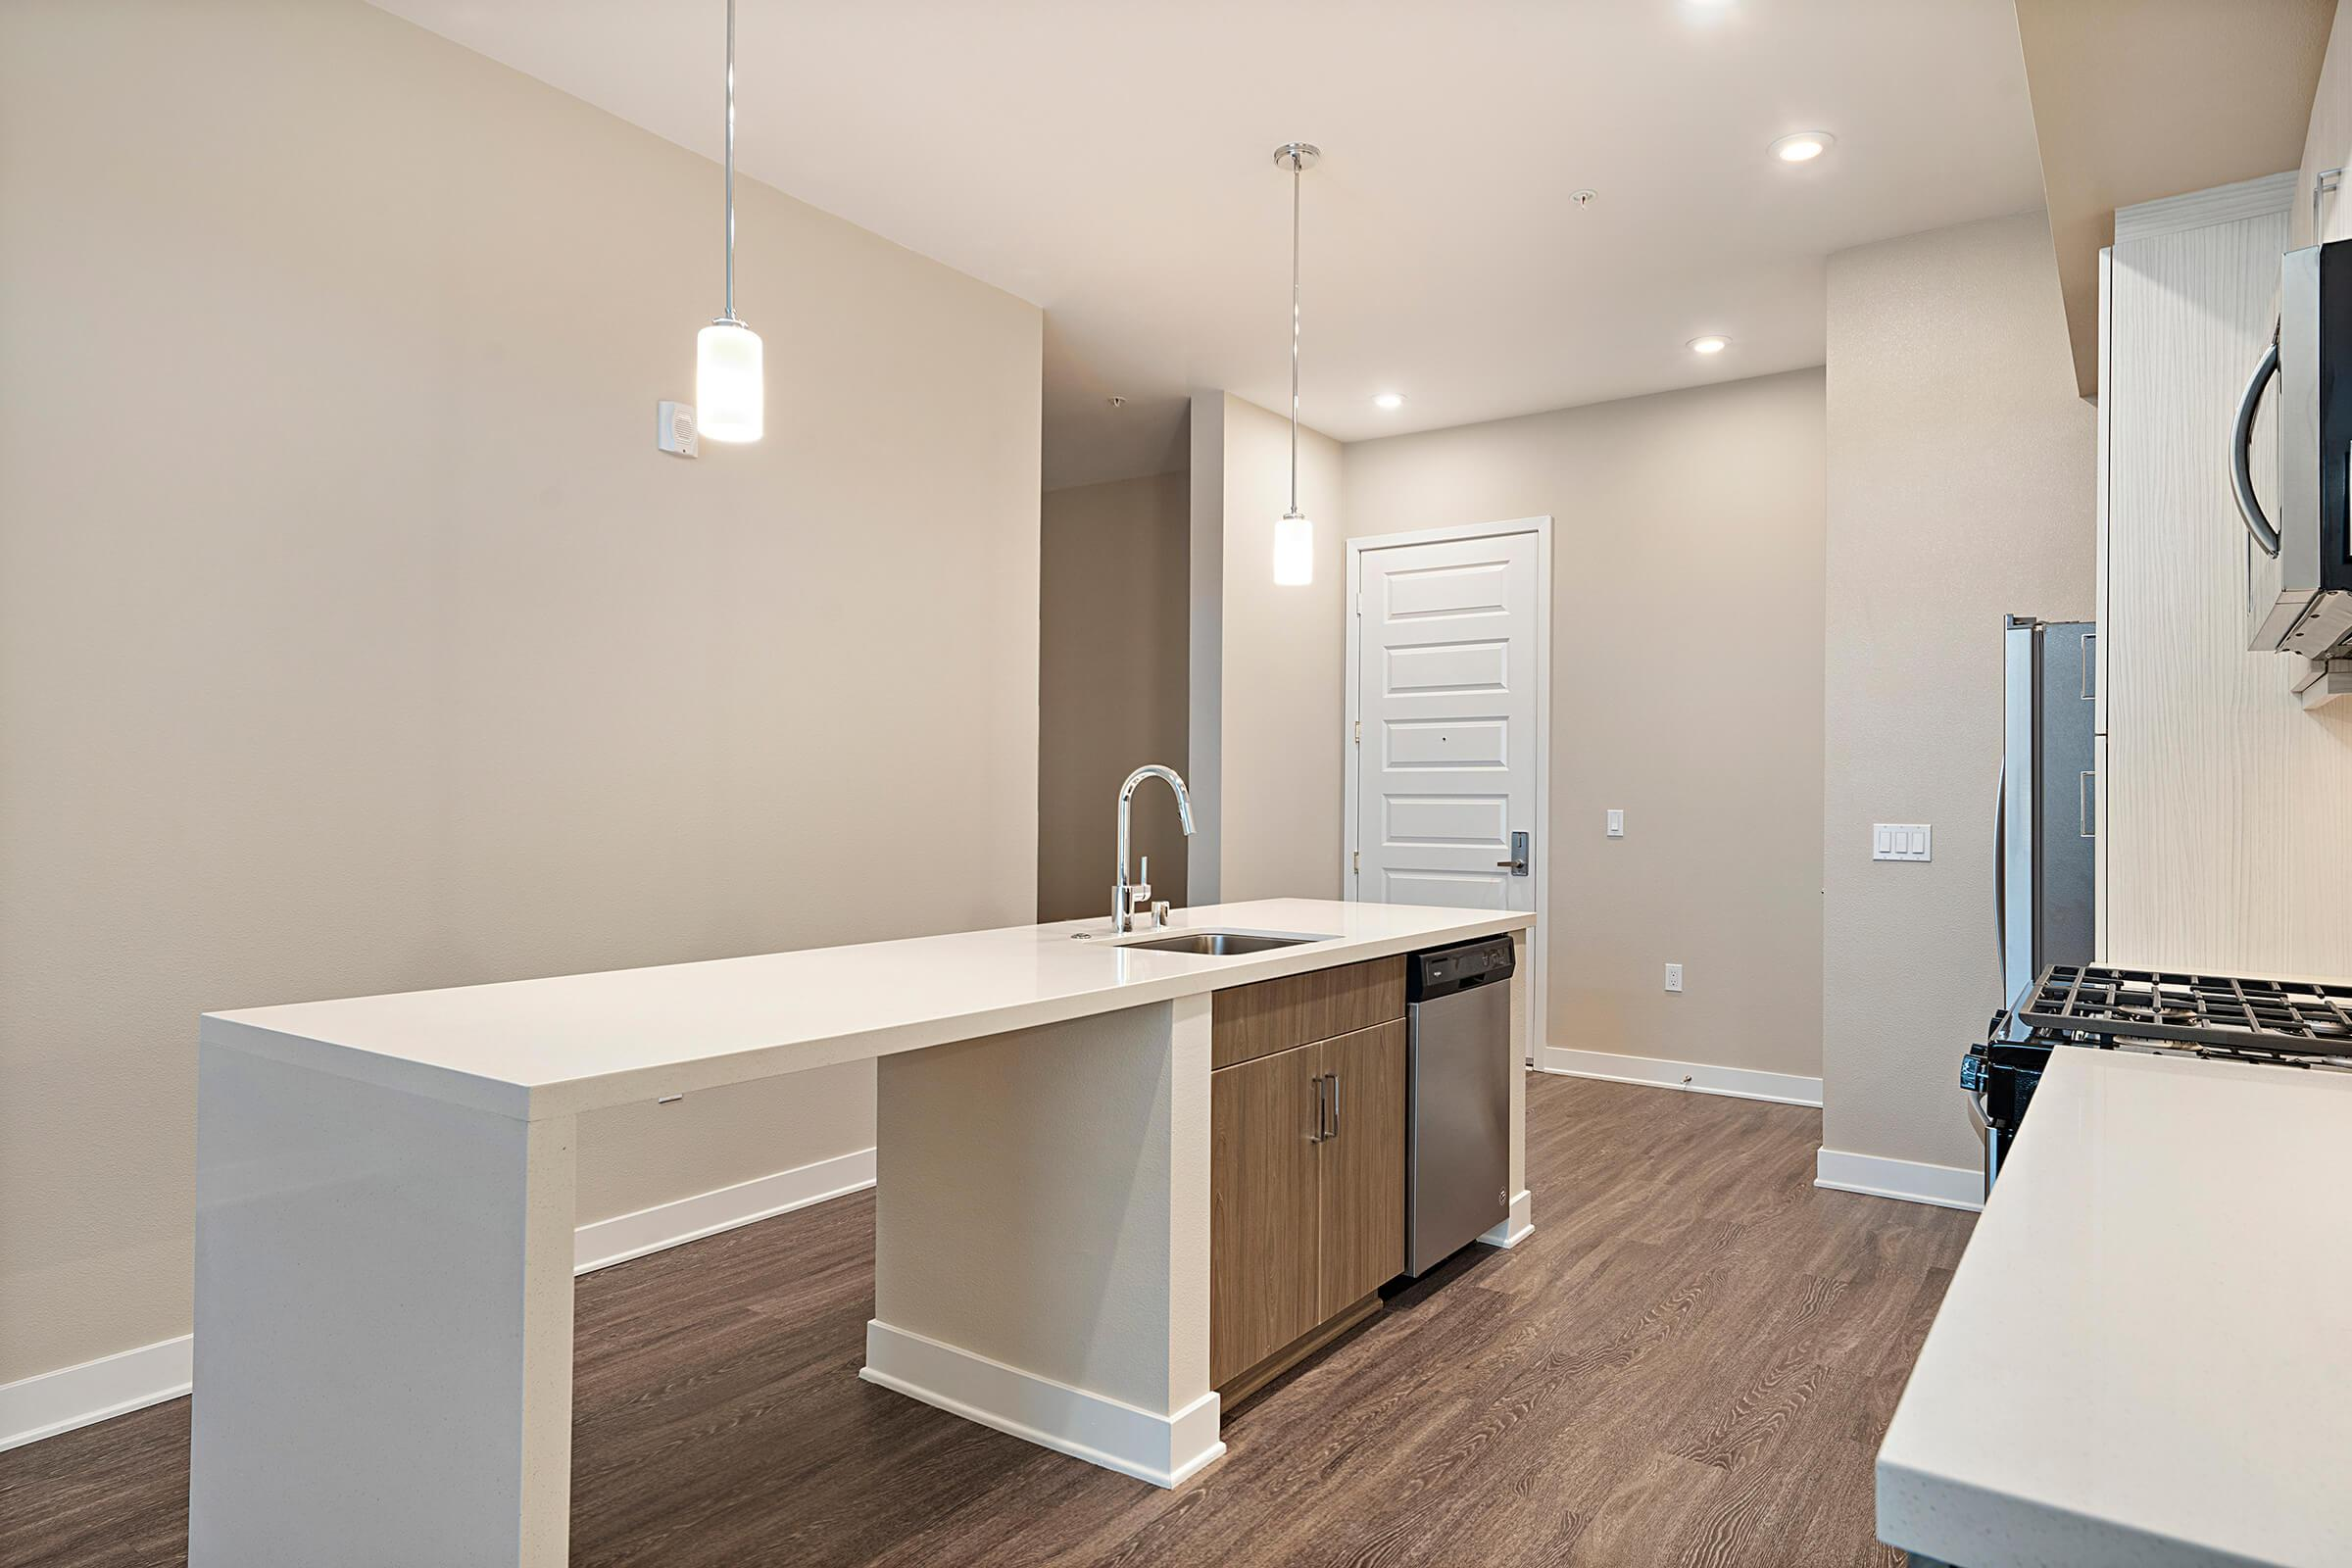 Kitchen with an island